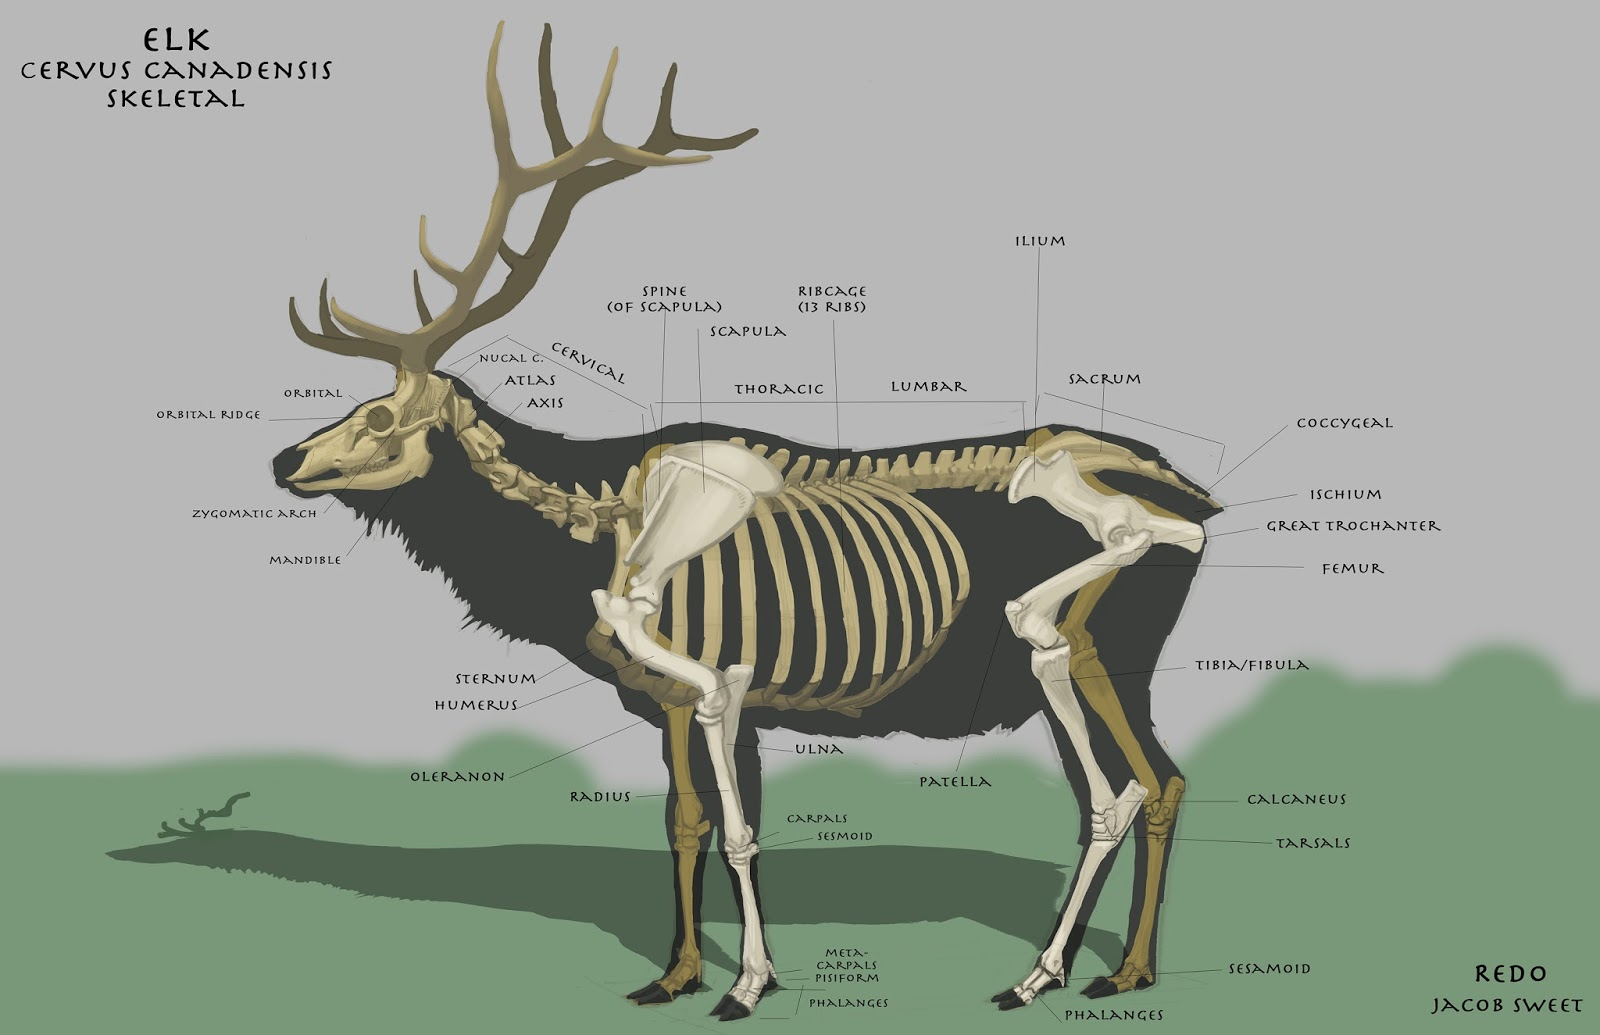 elk anatomy diagram 2001 bmw 325i belt elbow hit